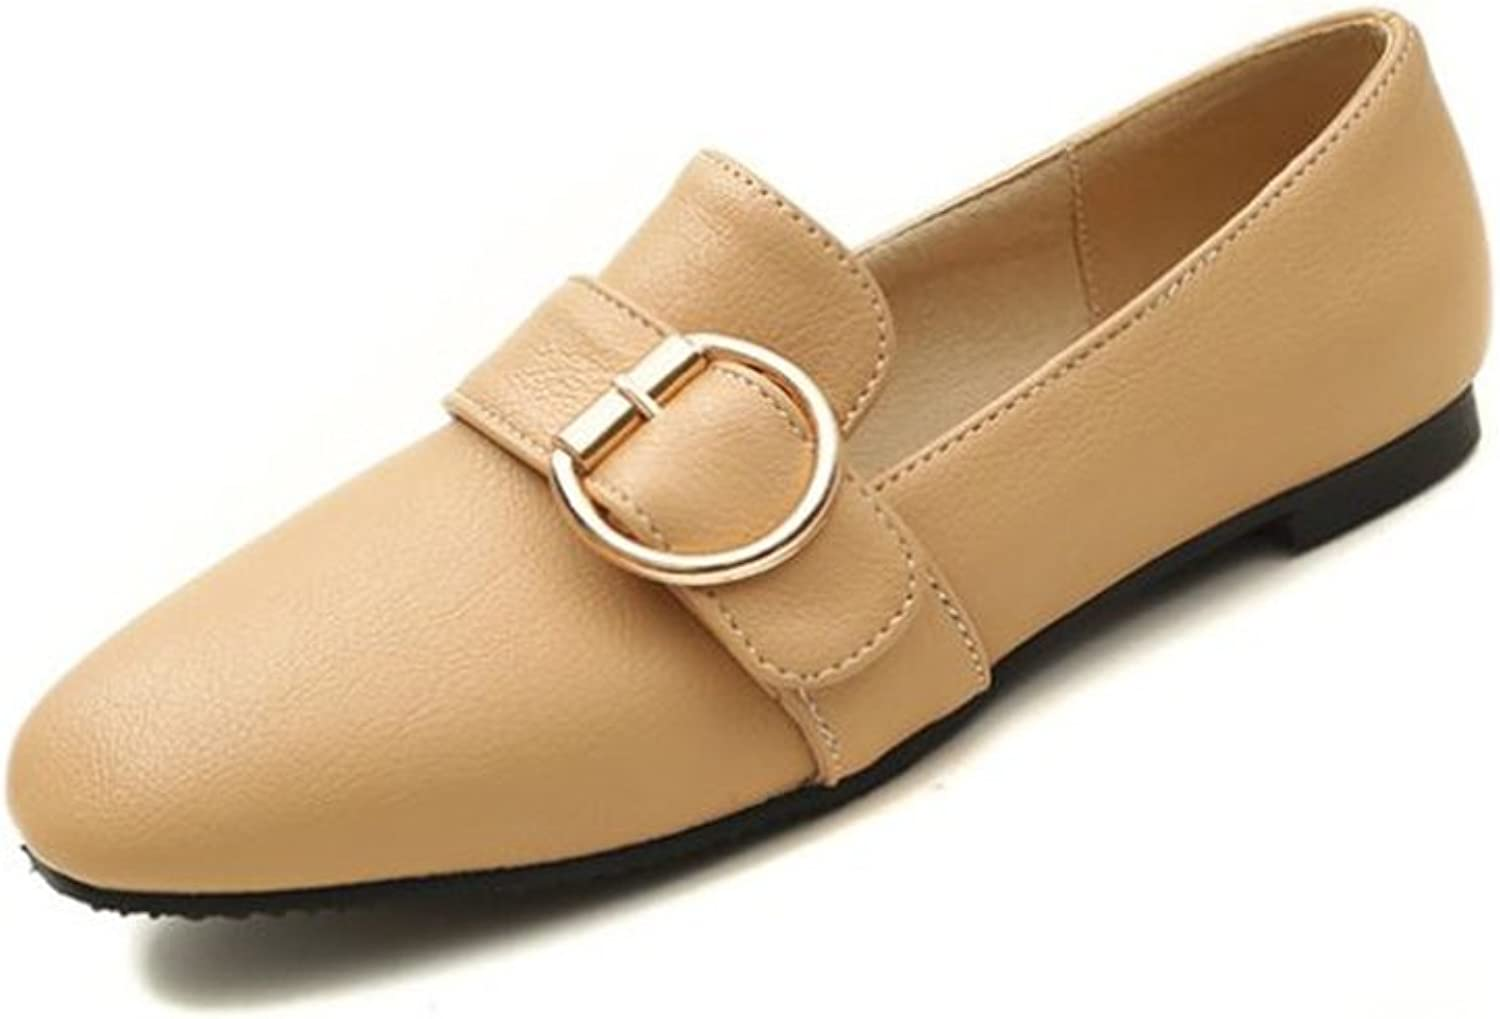 Eleganceoo Women's Fashion Pointy Toe Ballet Flat Suede Comfort Ballerina Slip On shoes